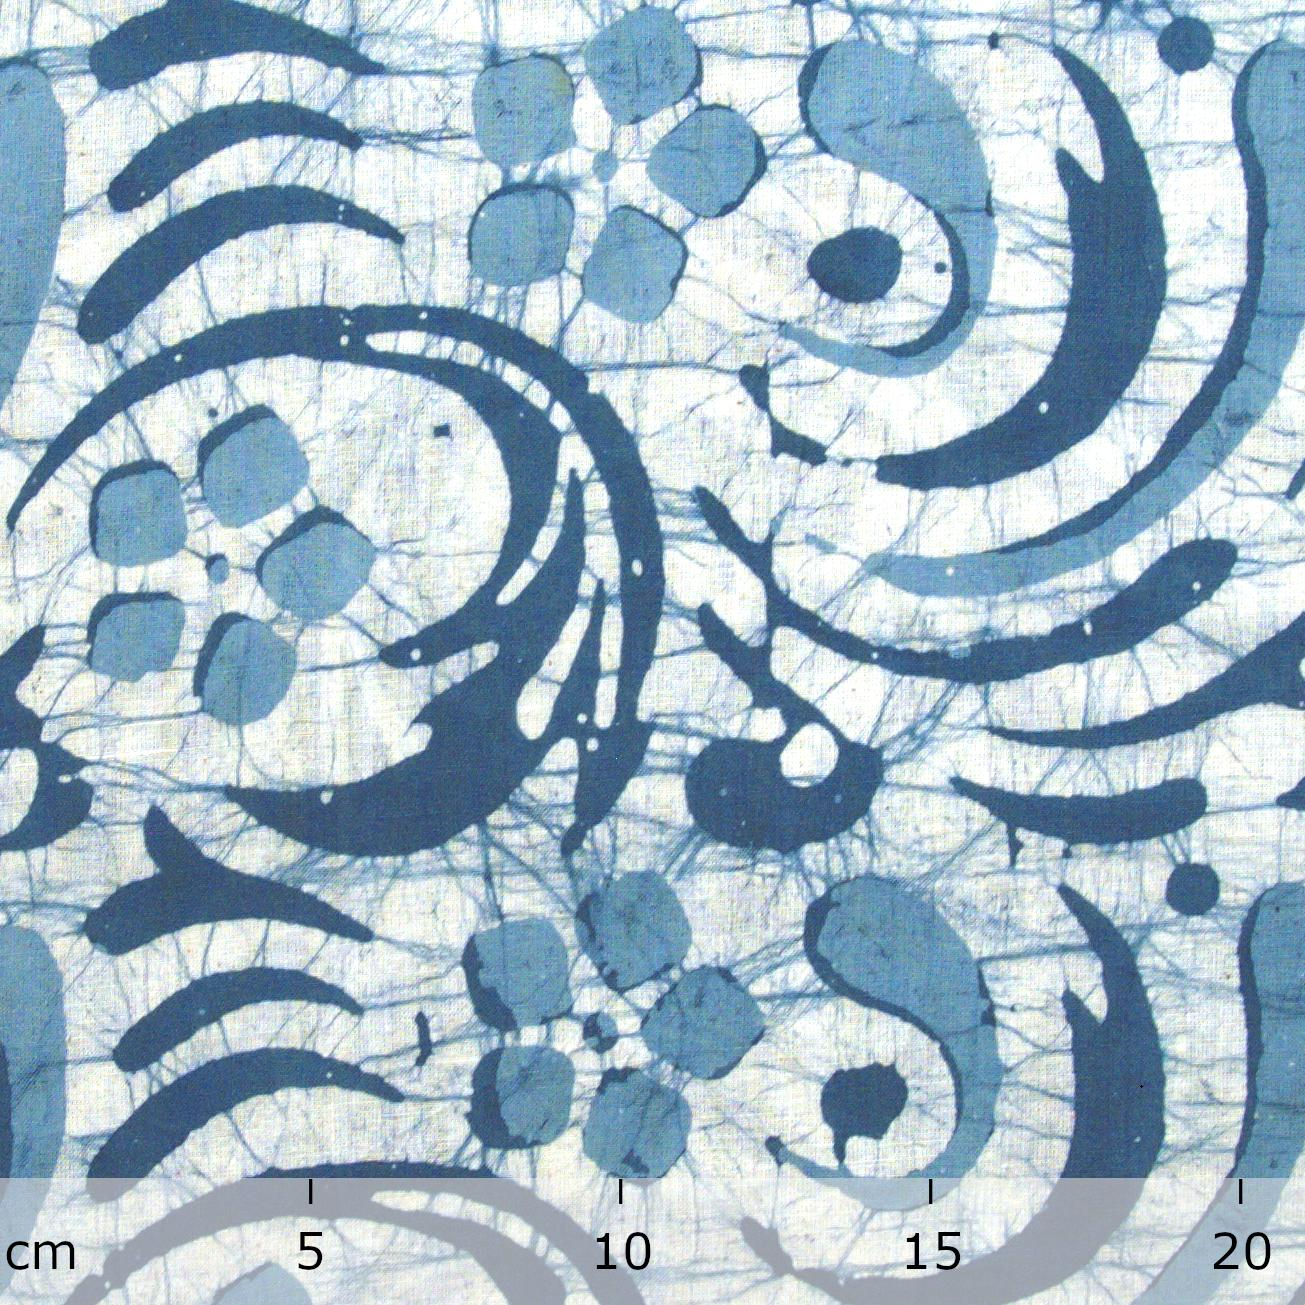 3 - SHA14 - 100% Block-Printed Batik Cotton Fabric From India - Batik - Blue Swirls - Ruler